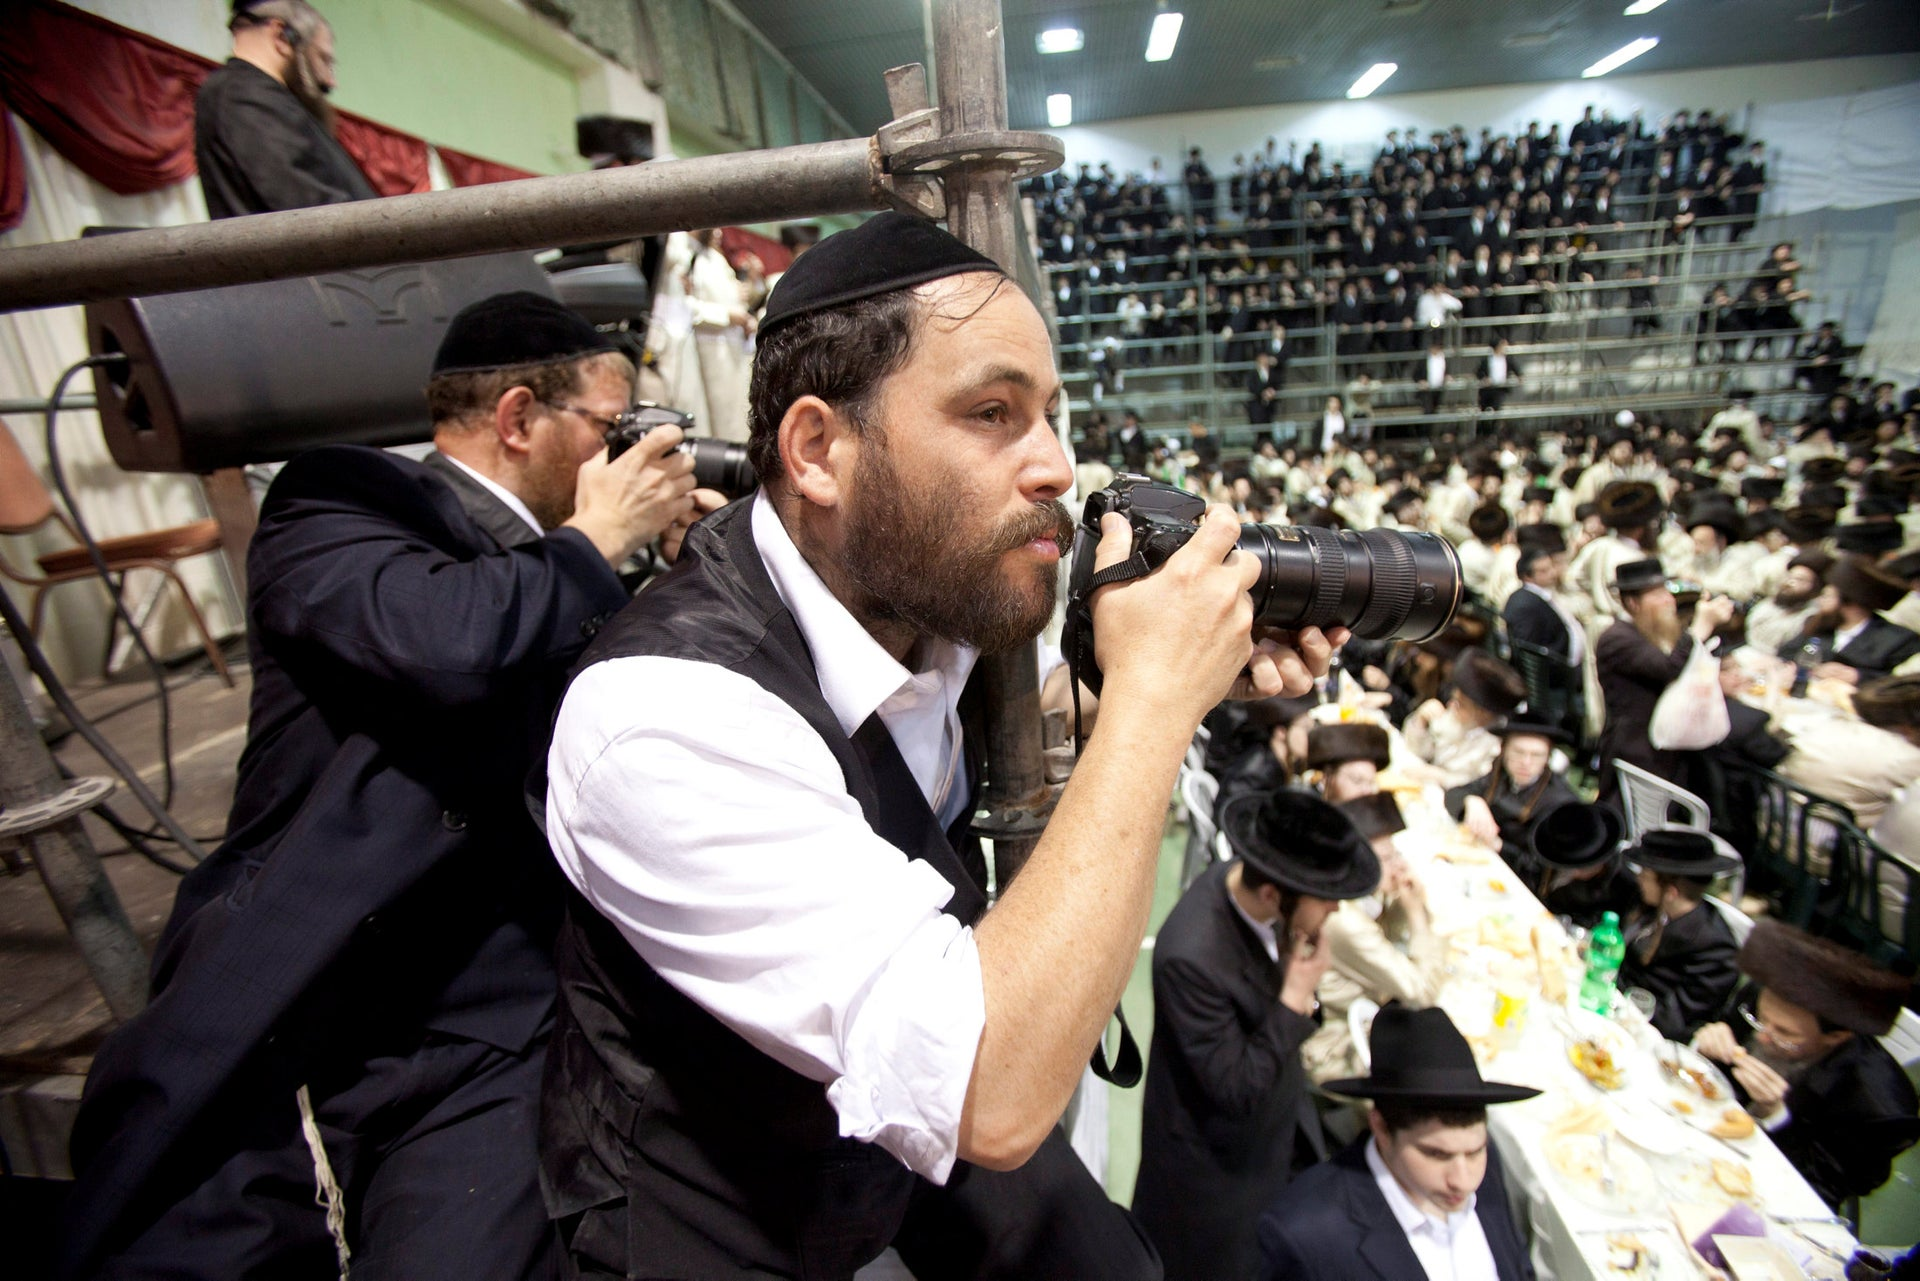 Shuki Lerer, the country's official admor photographer, at a Hasidic wedding.